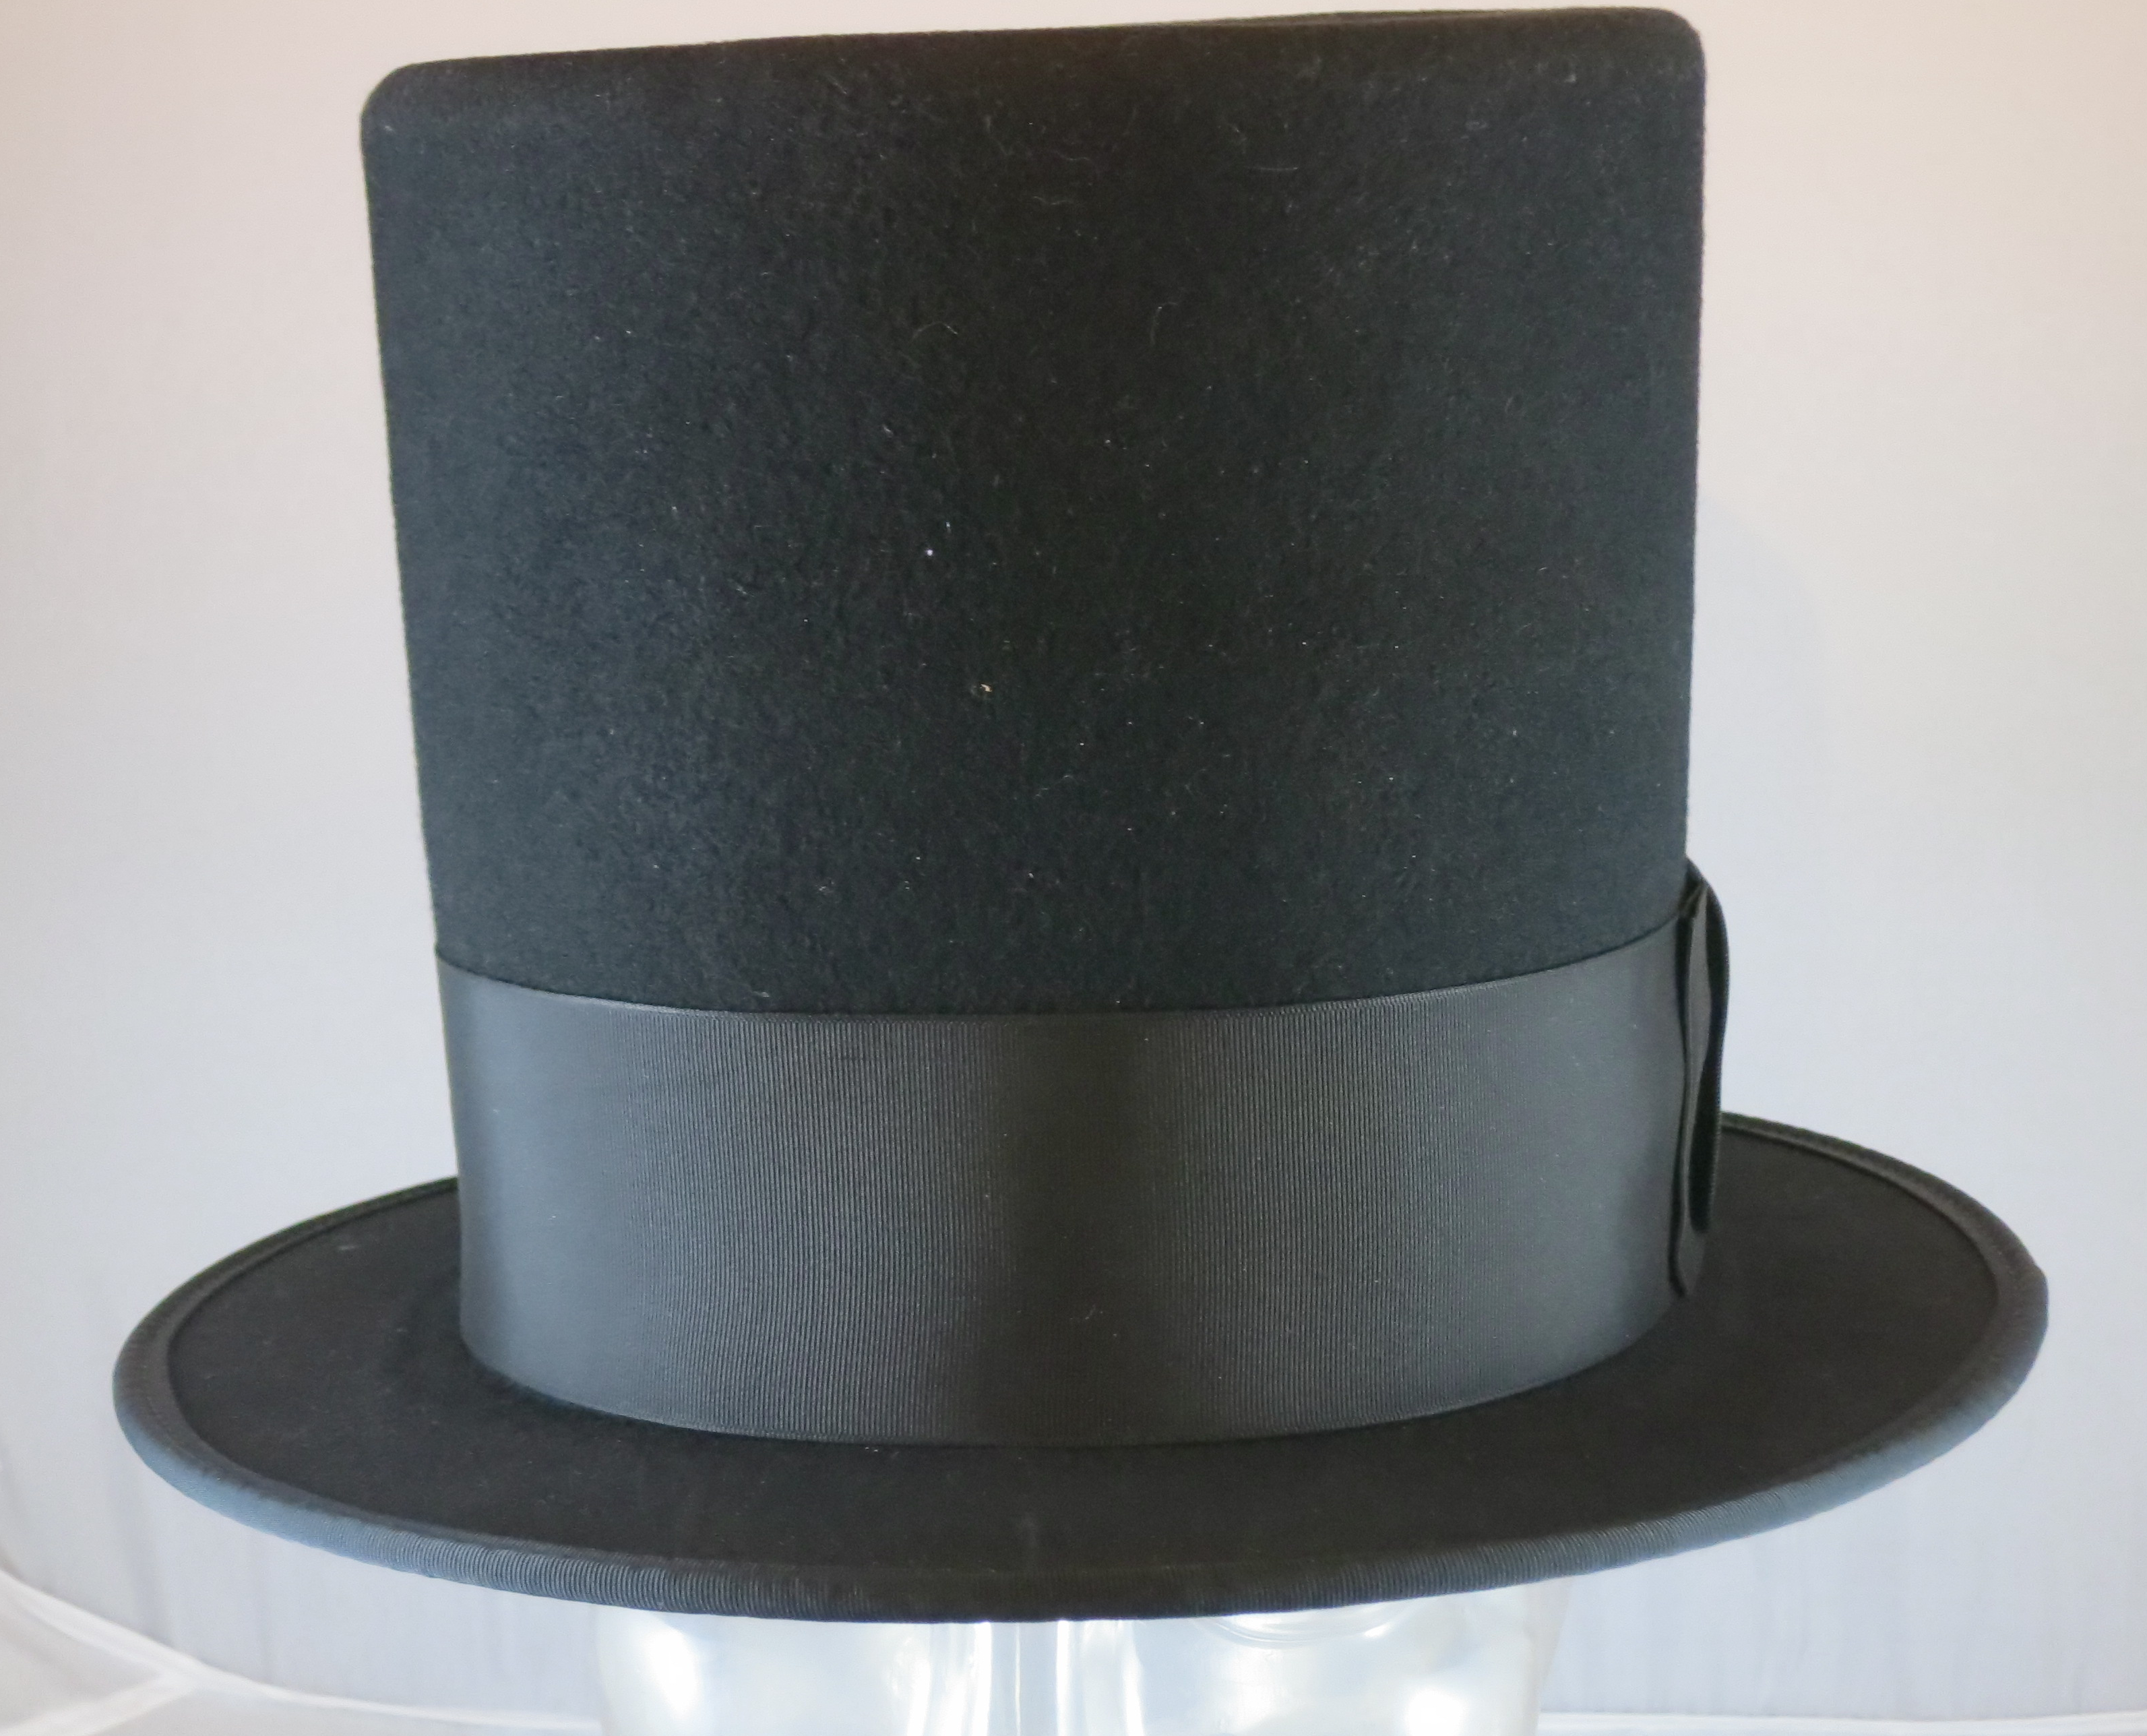 The Abe Lincoln Top Hat